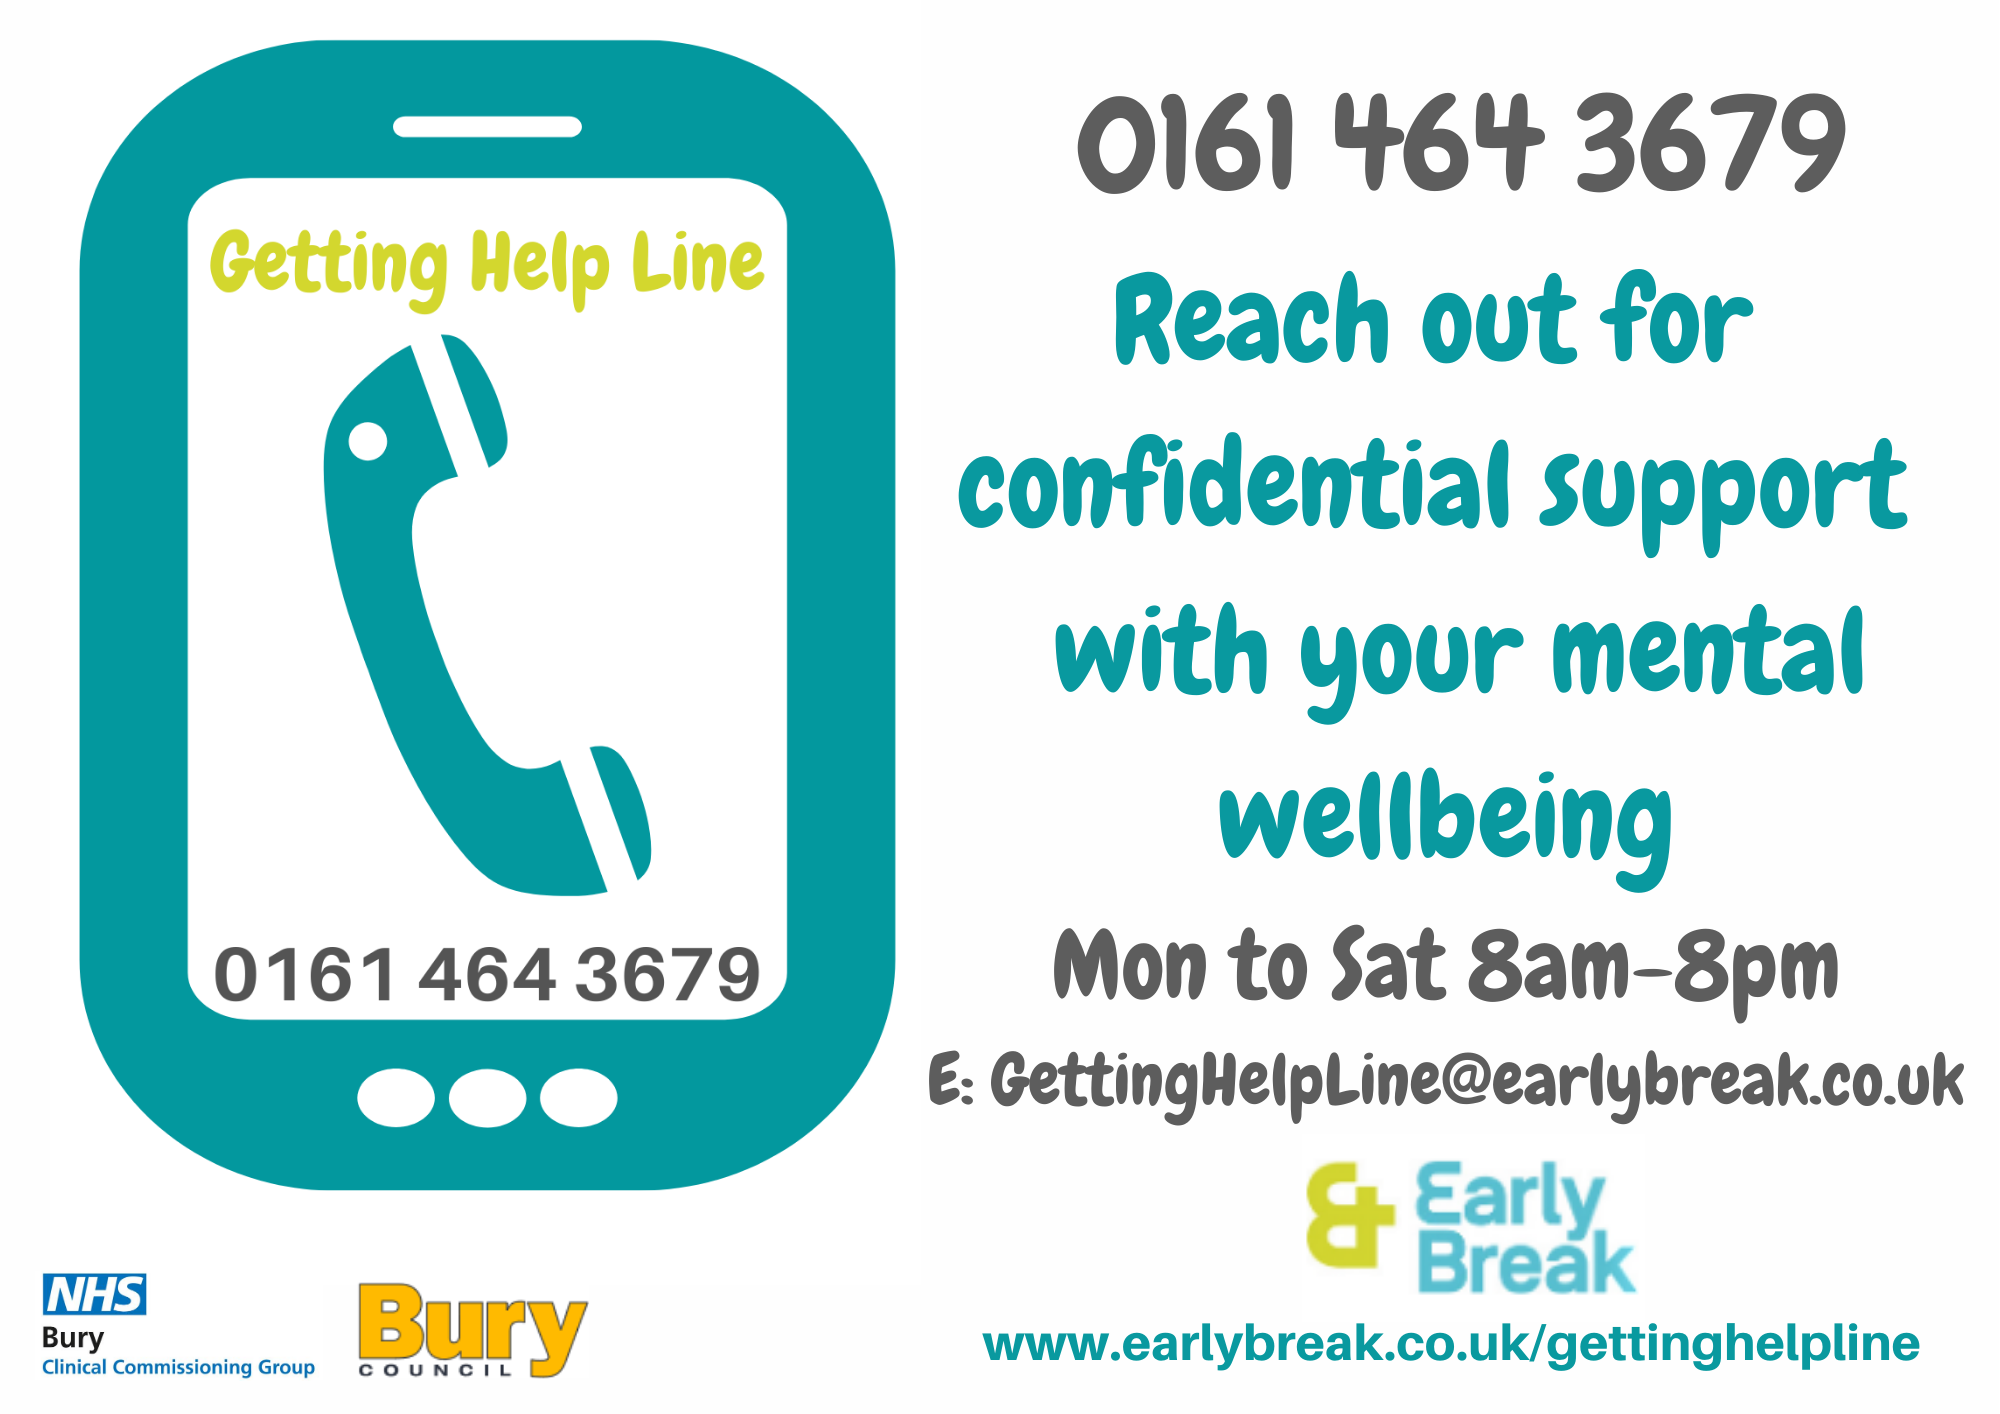 The Getting Help Line Logo